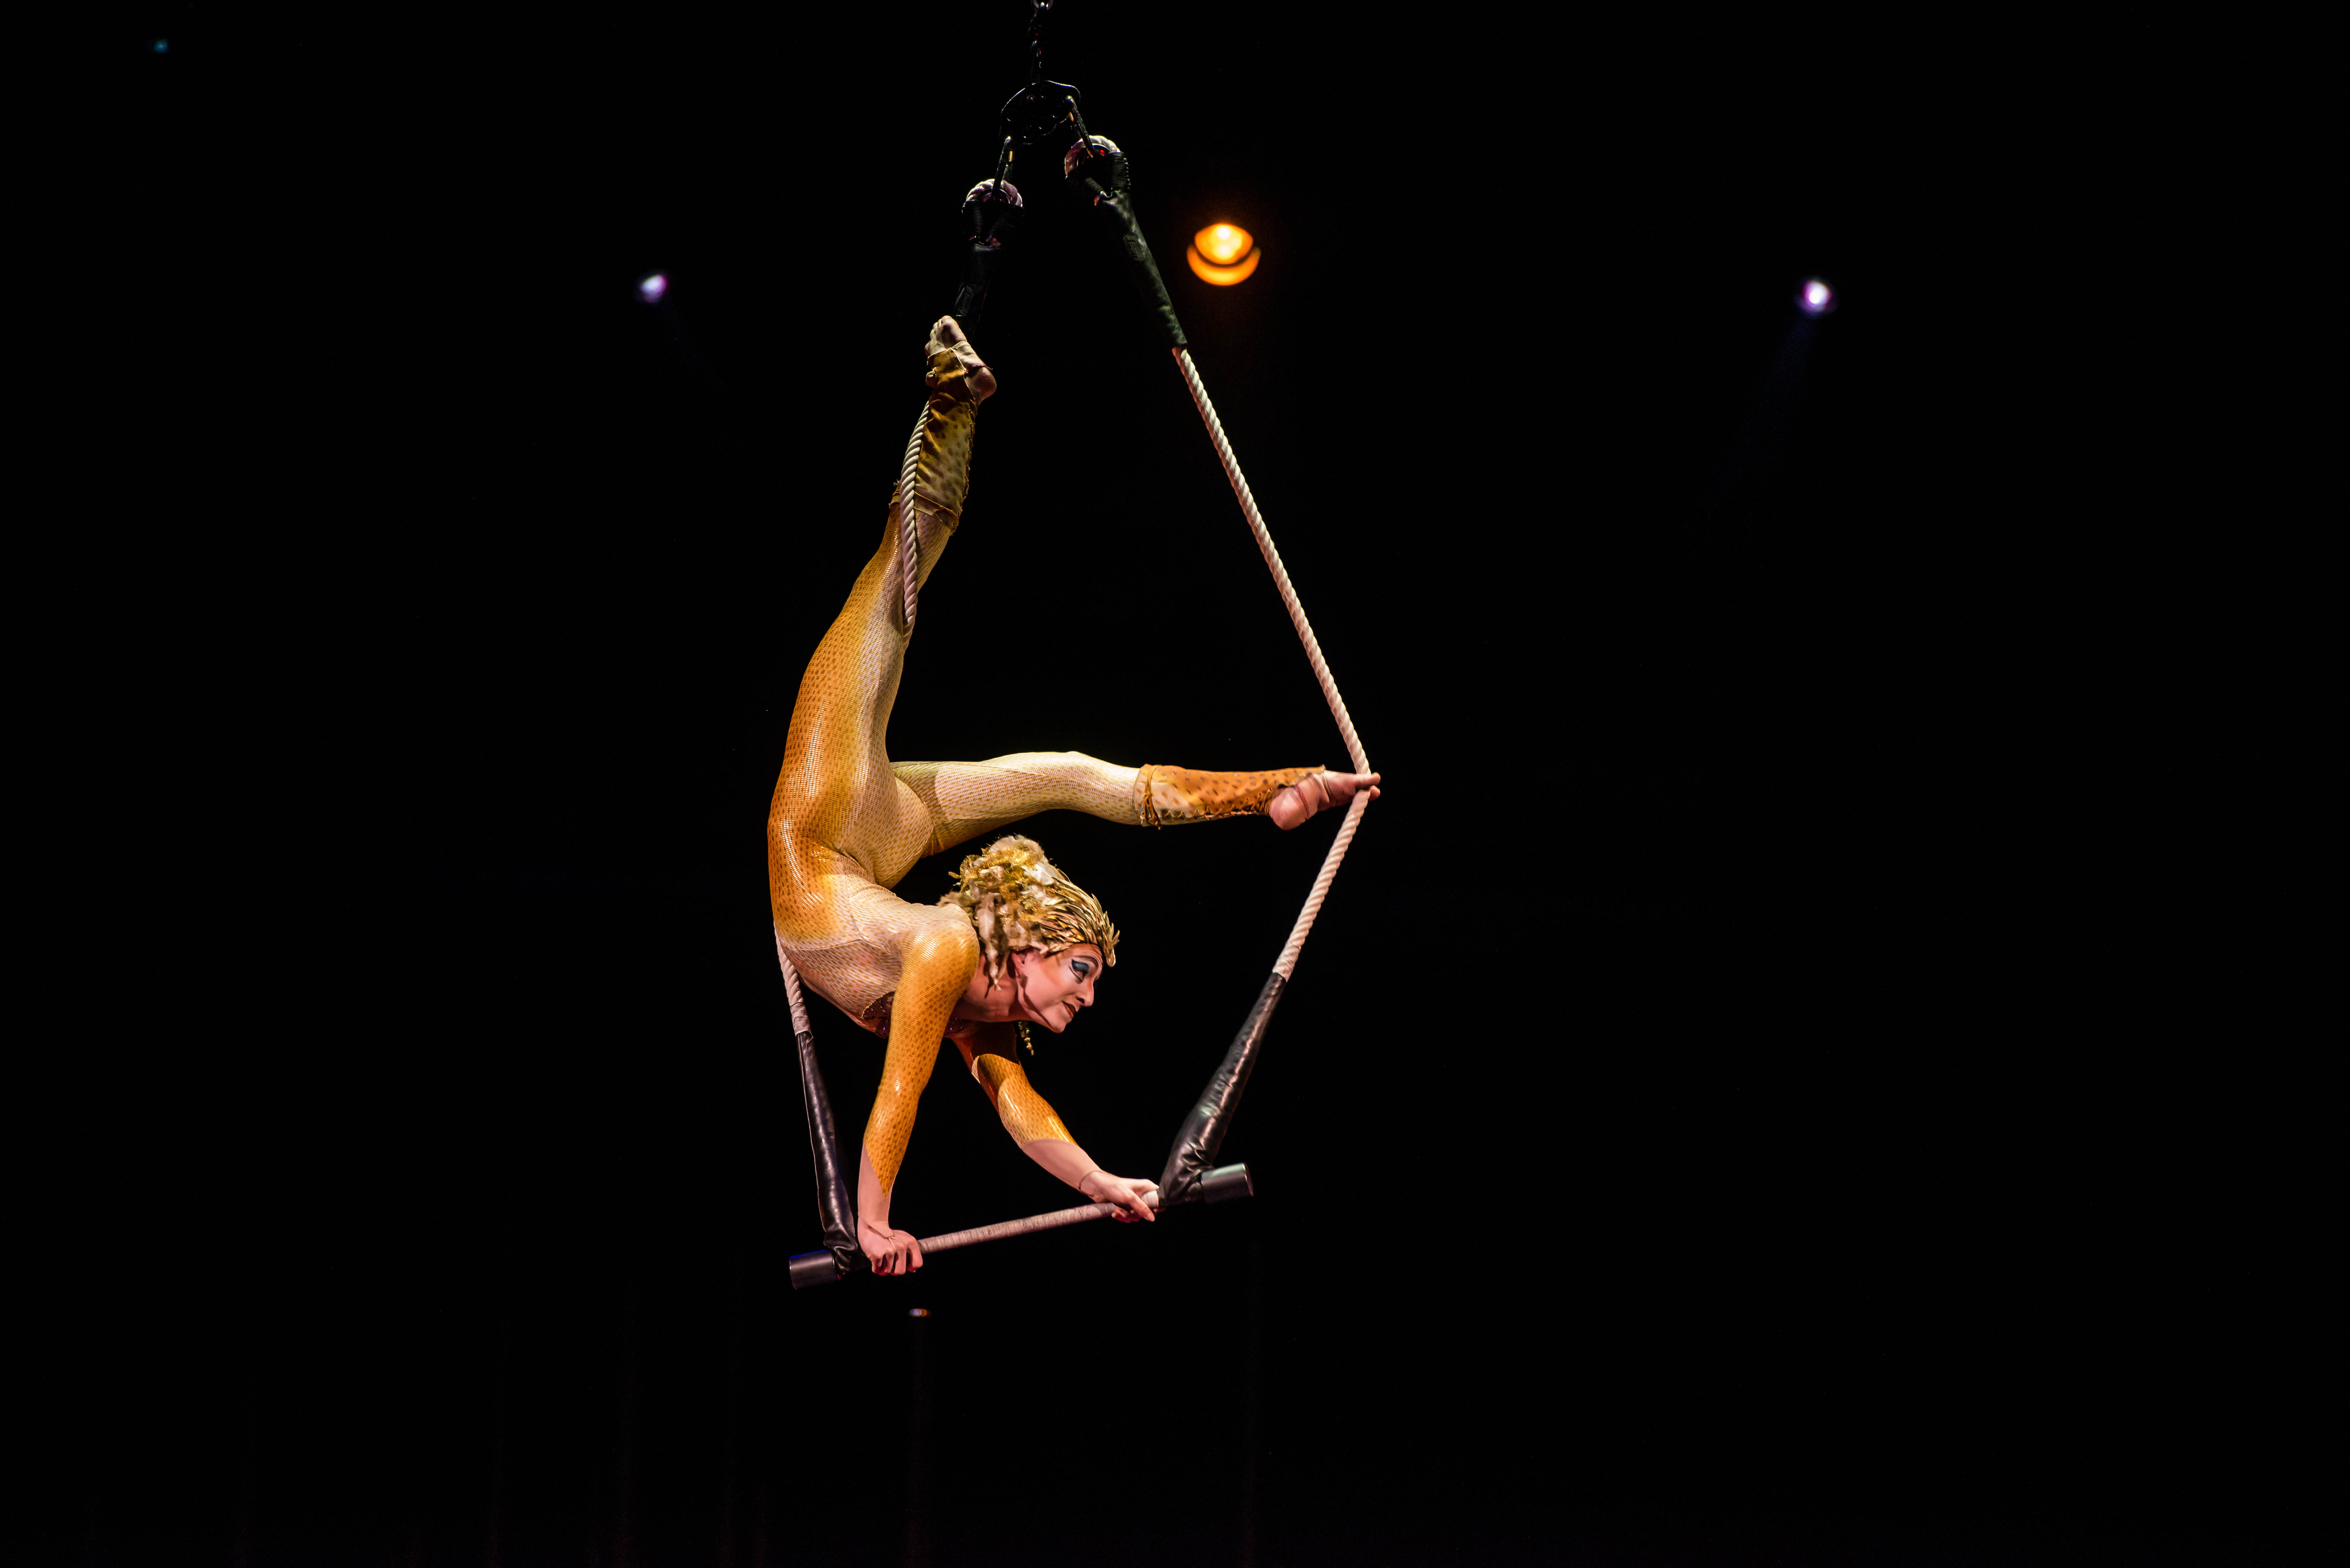 Cirque du Solei performance